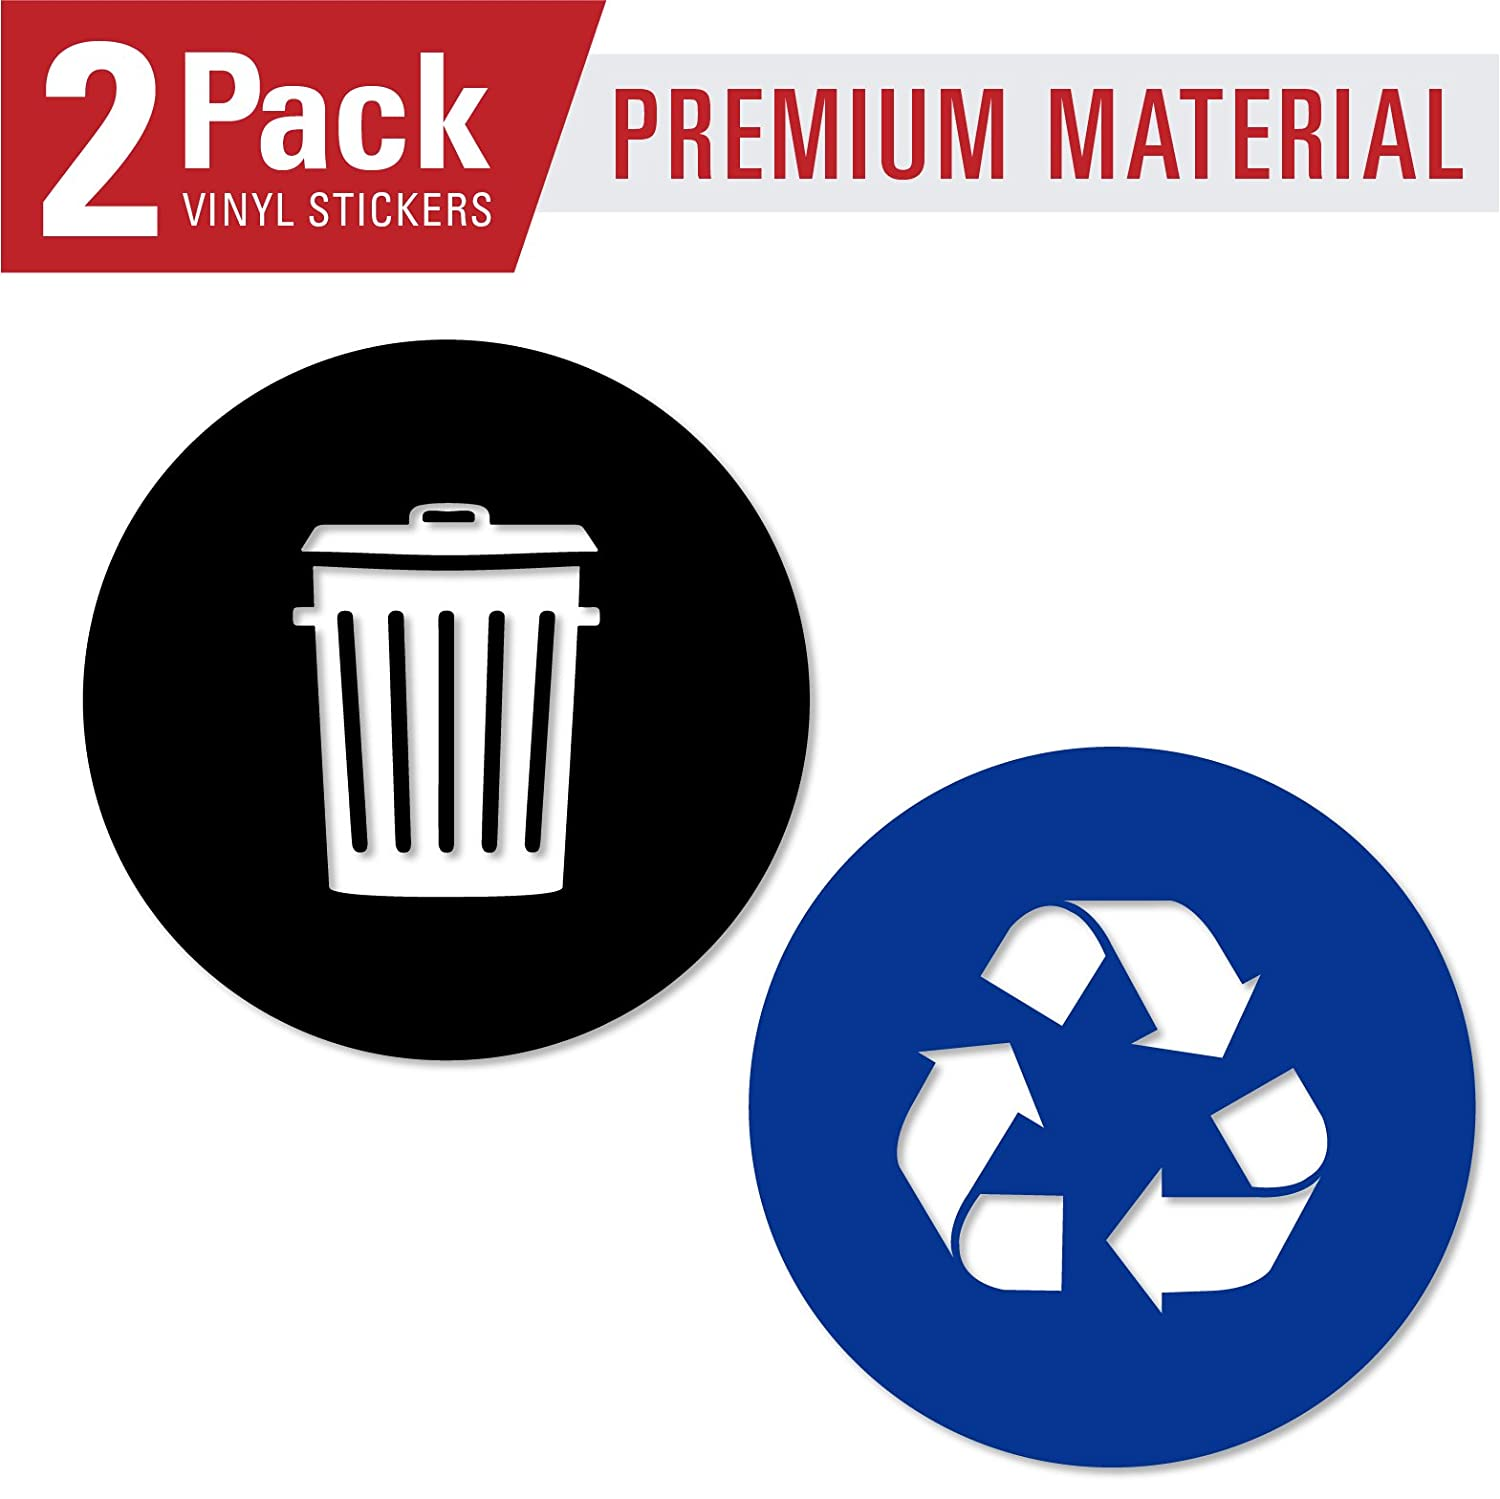 Recycle and trash sticker vinyl modern logo 5 5 x 5 5 1 ea symbol to organize trash cans or garbage containers and walls small blue and black